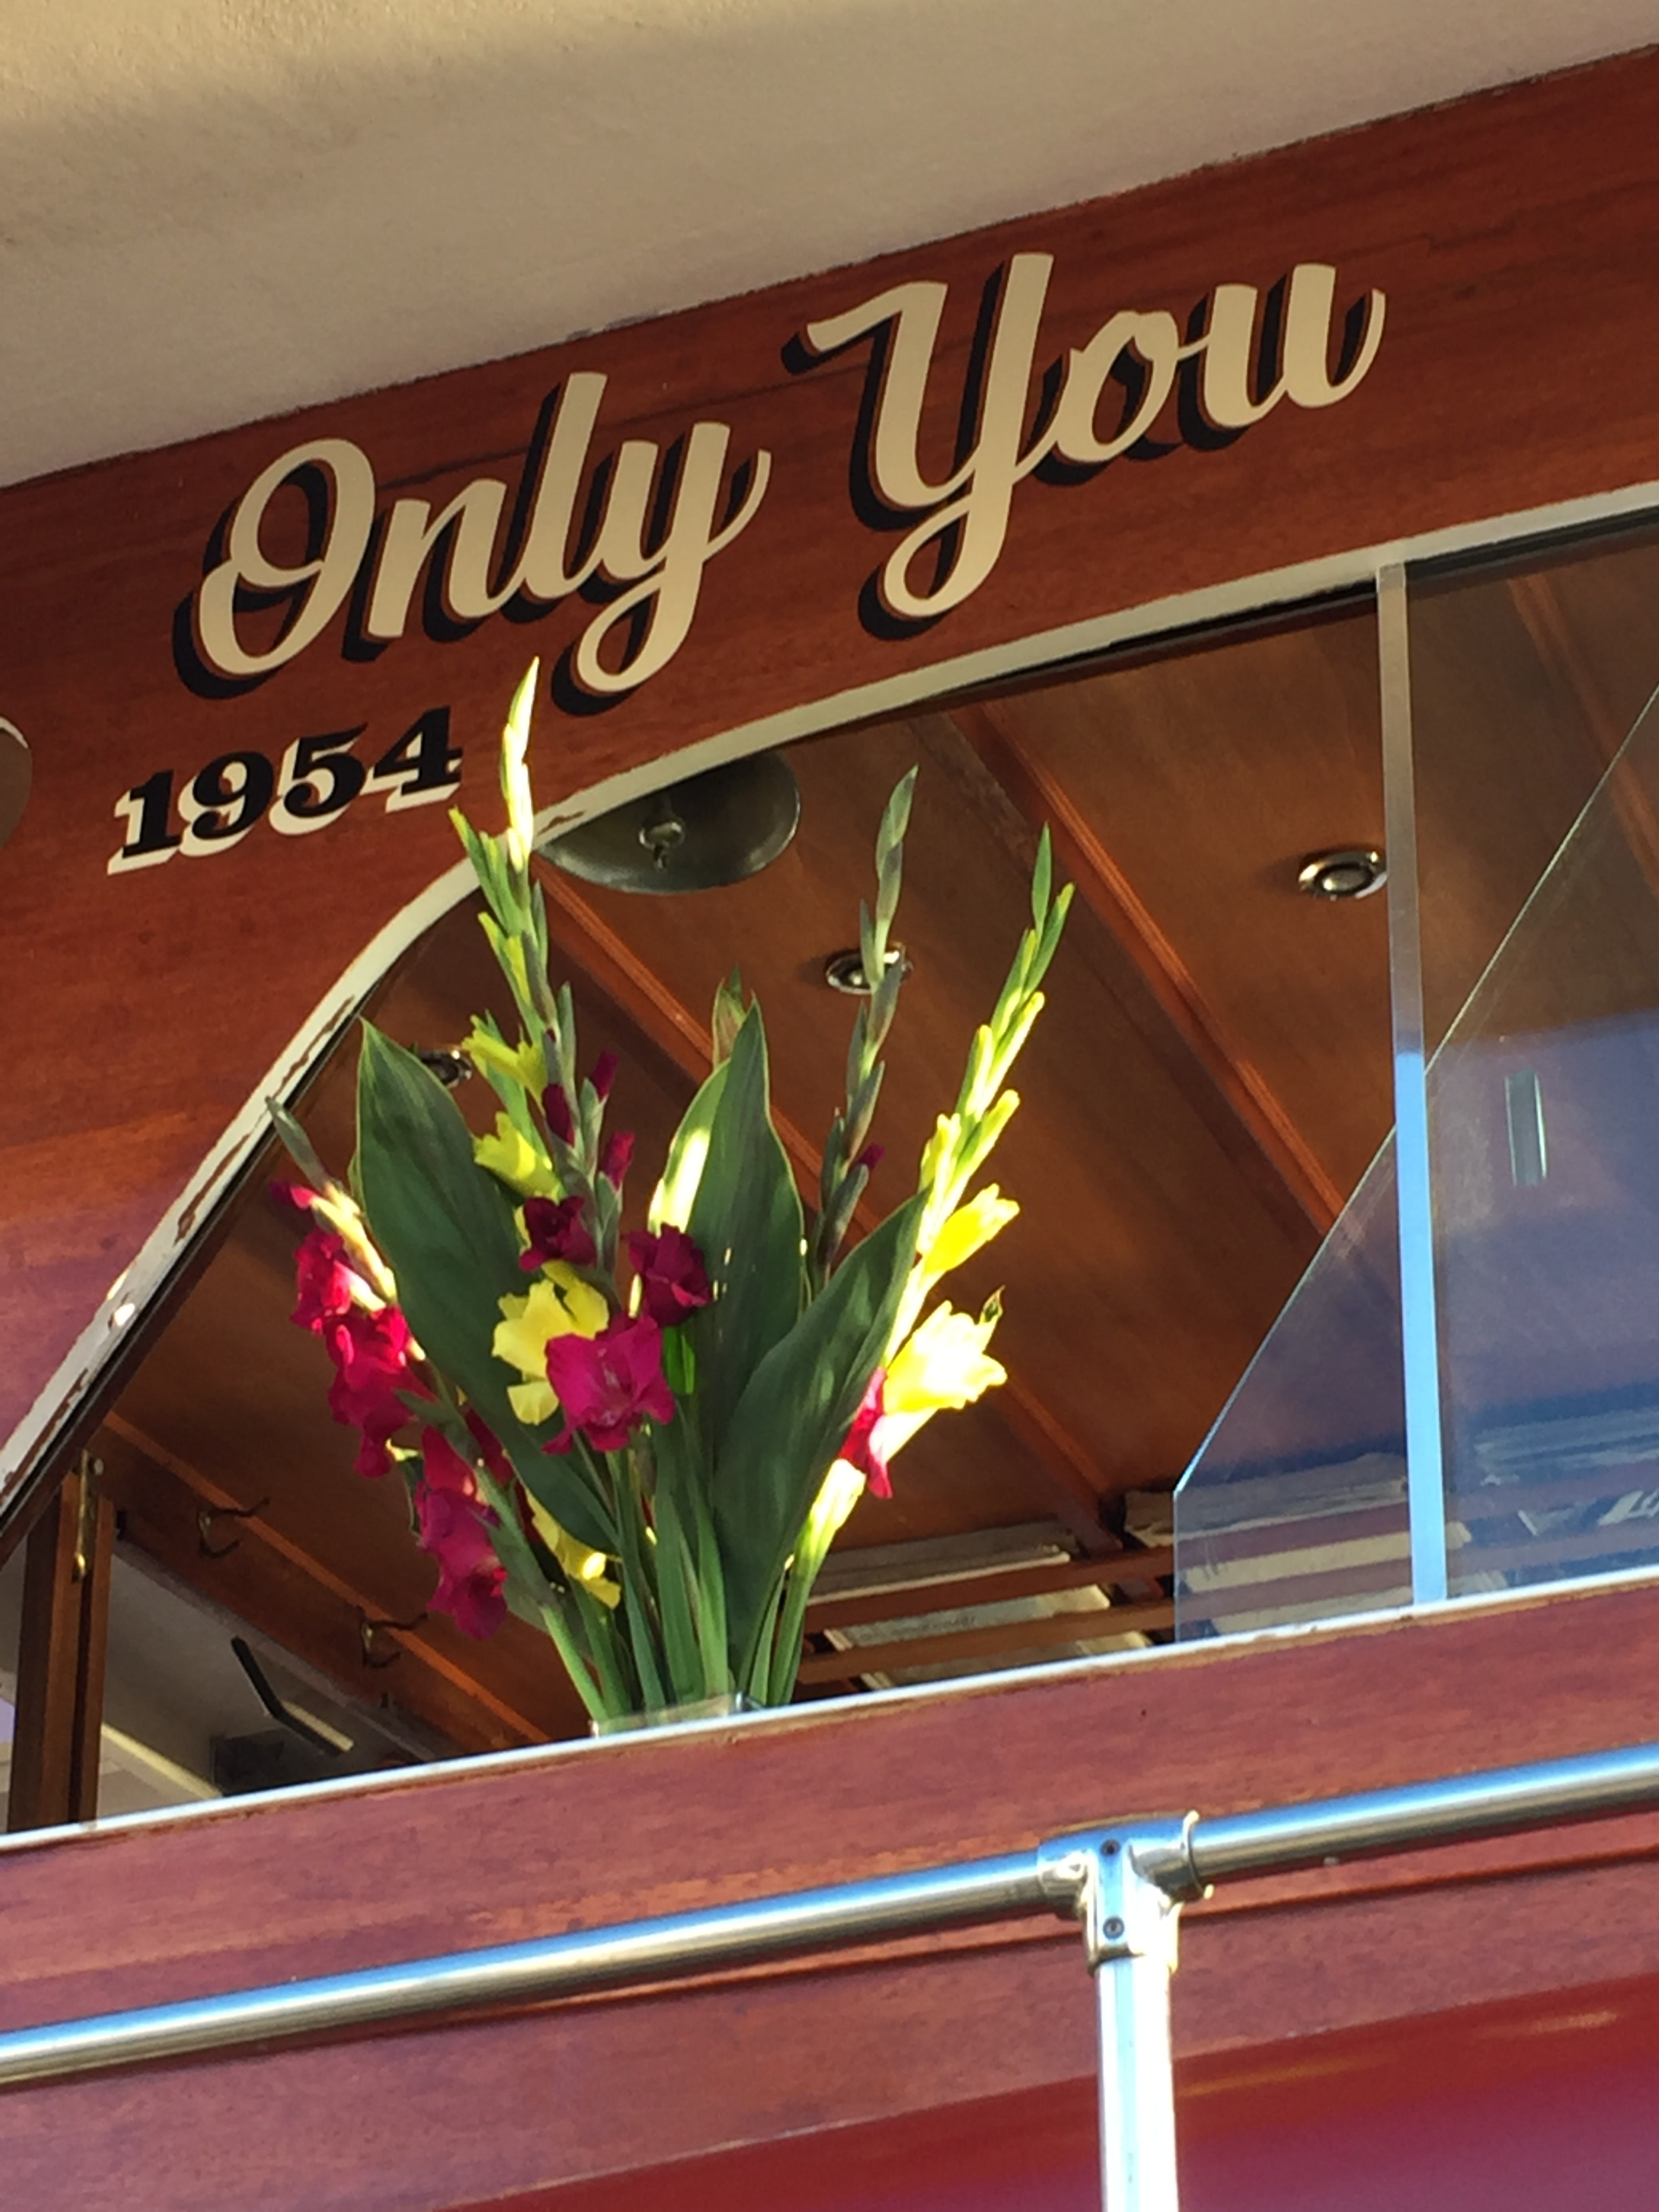 Only You - owned by Keith Finholm